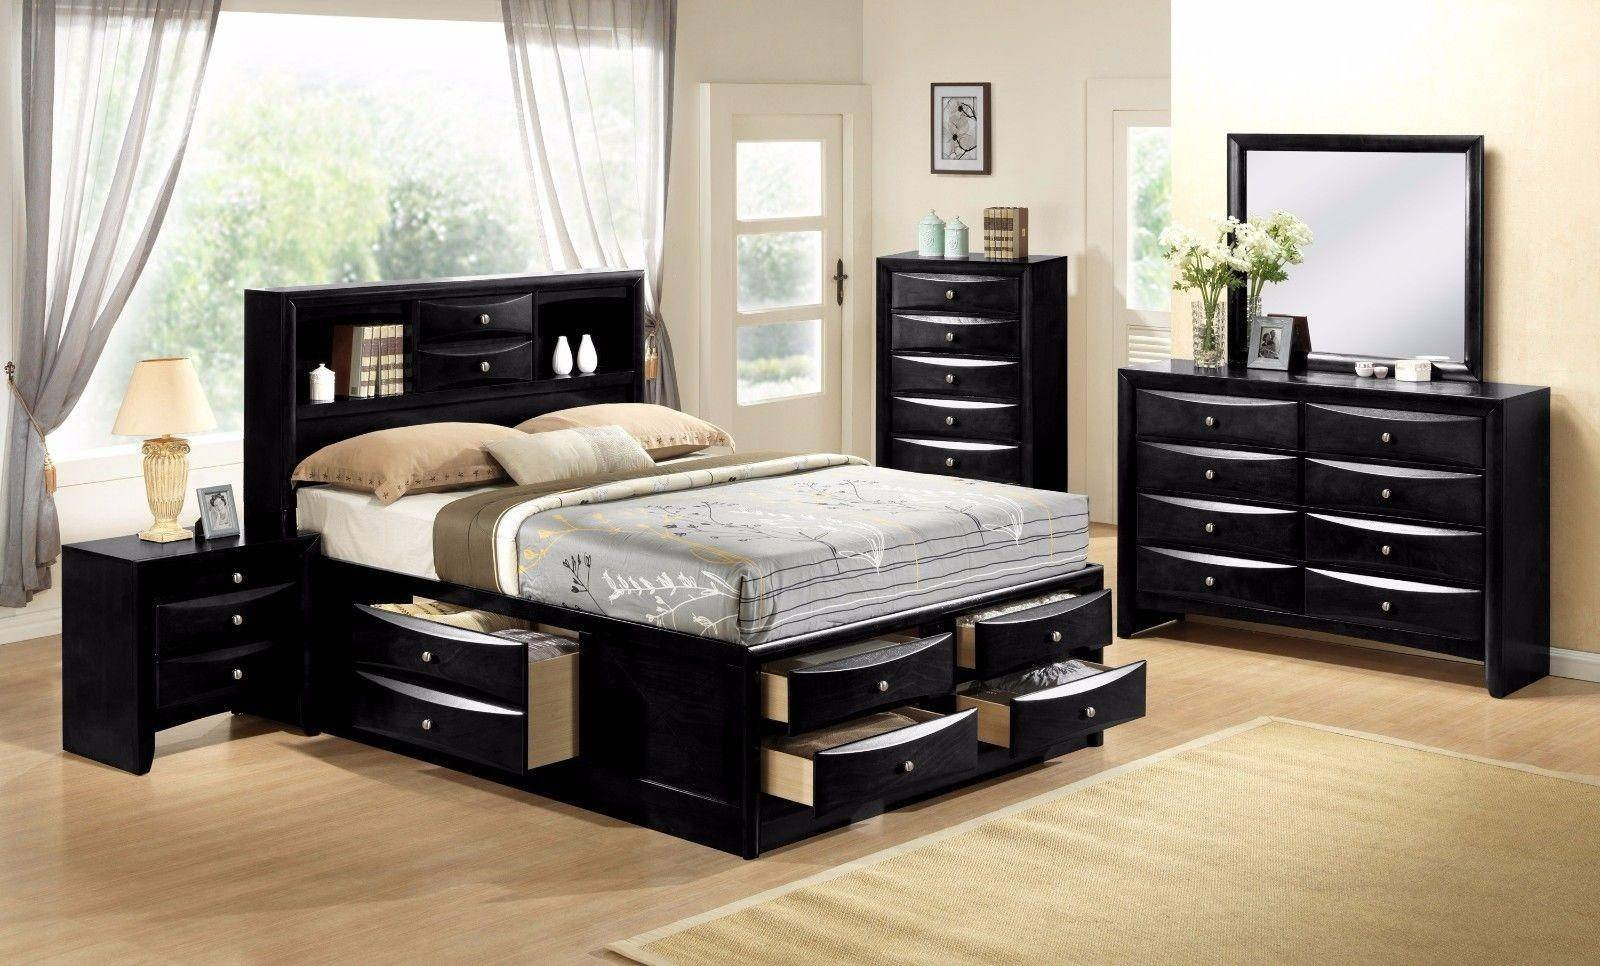 Black Wood Bedroom Set Beautiful Crown Mark B4285 Emily Modern Black Finish Storage King Size